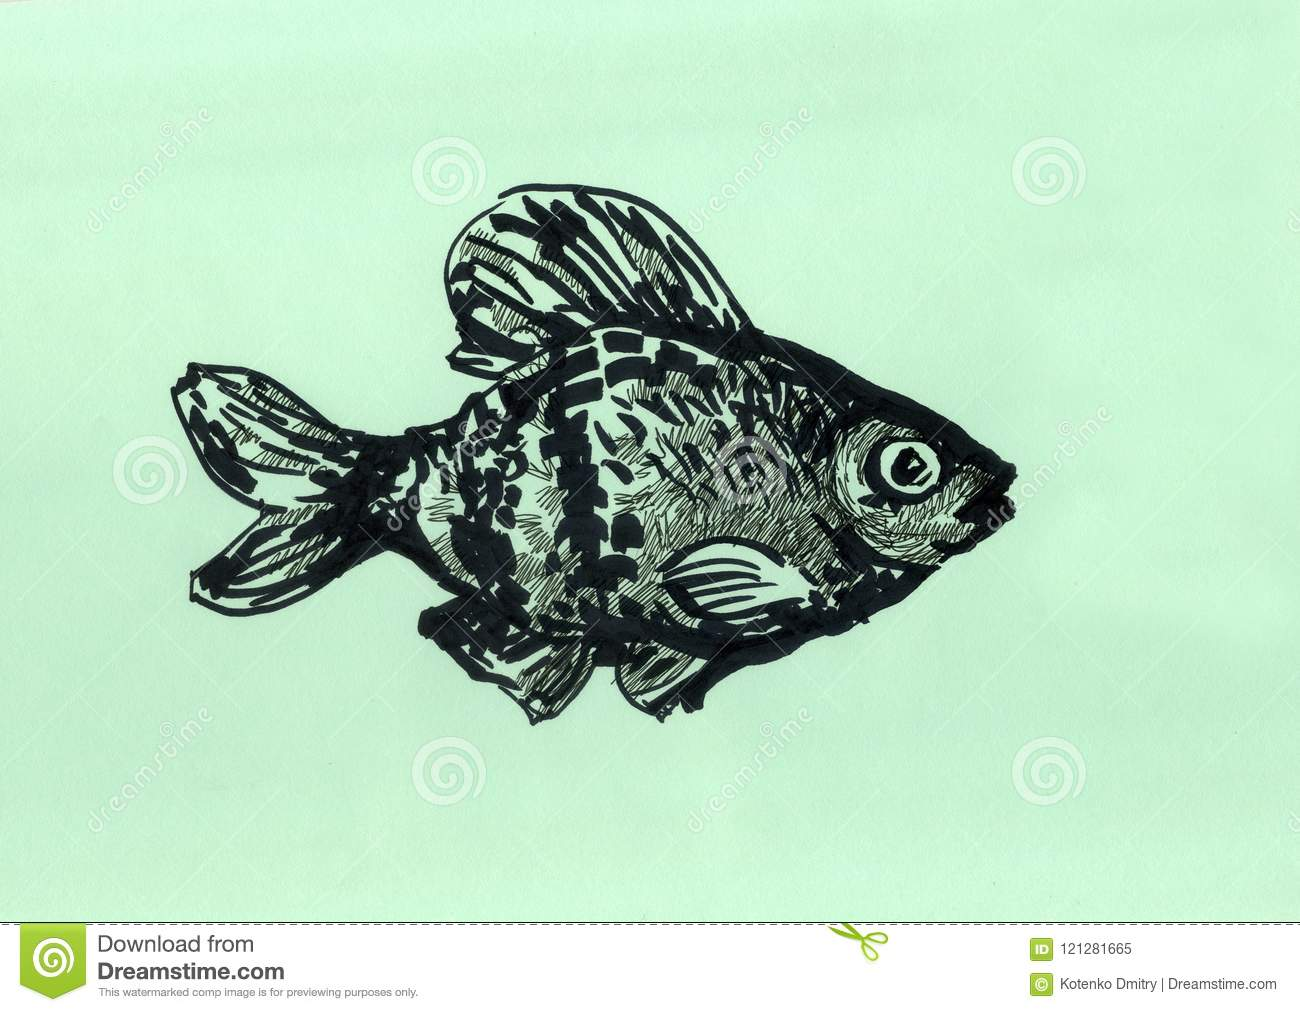 Aquarium Fish Barbus Illustration For Website Stock Illustration